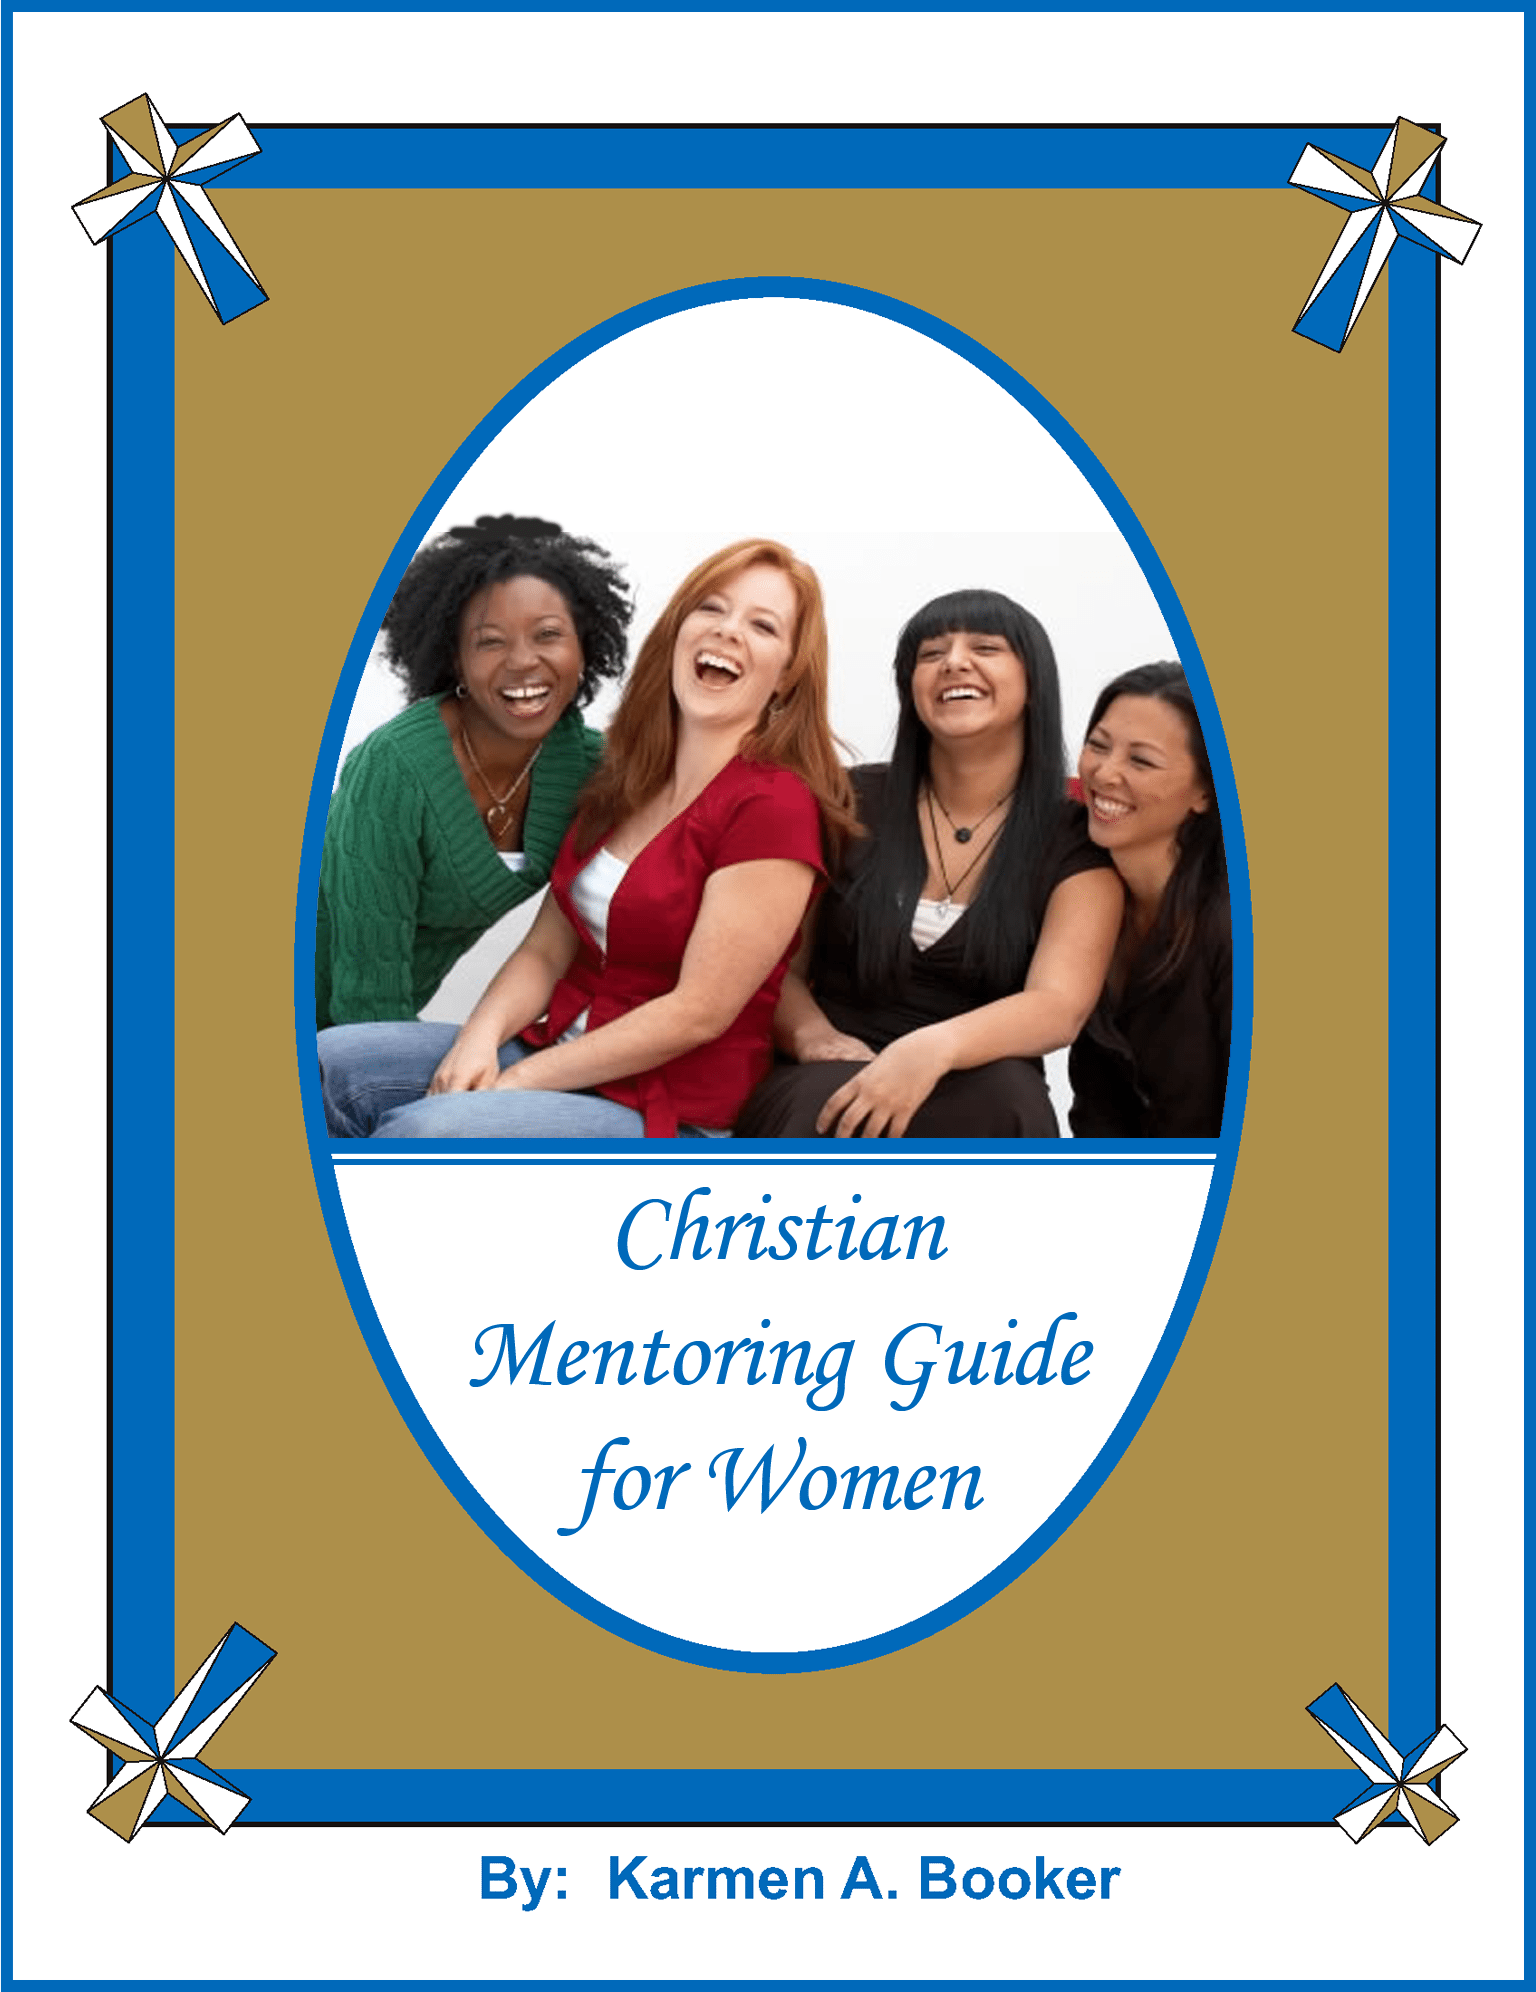 christian single women in mentor This is the first of two posts looking at older women mentoring due to that i eager to learn from you the good news as pertains faith and hope for a christian.